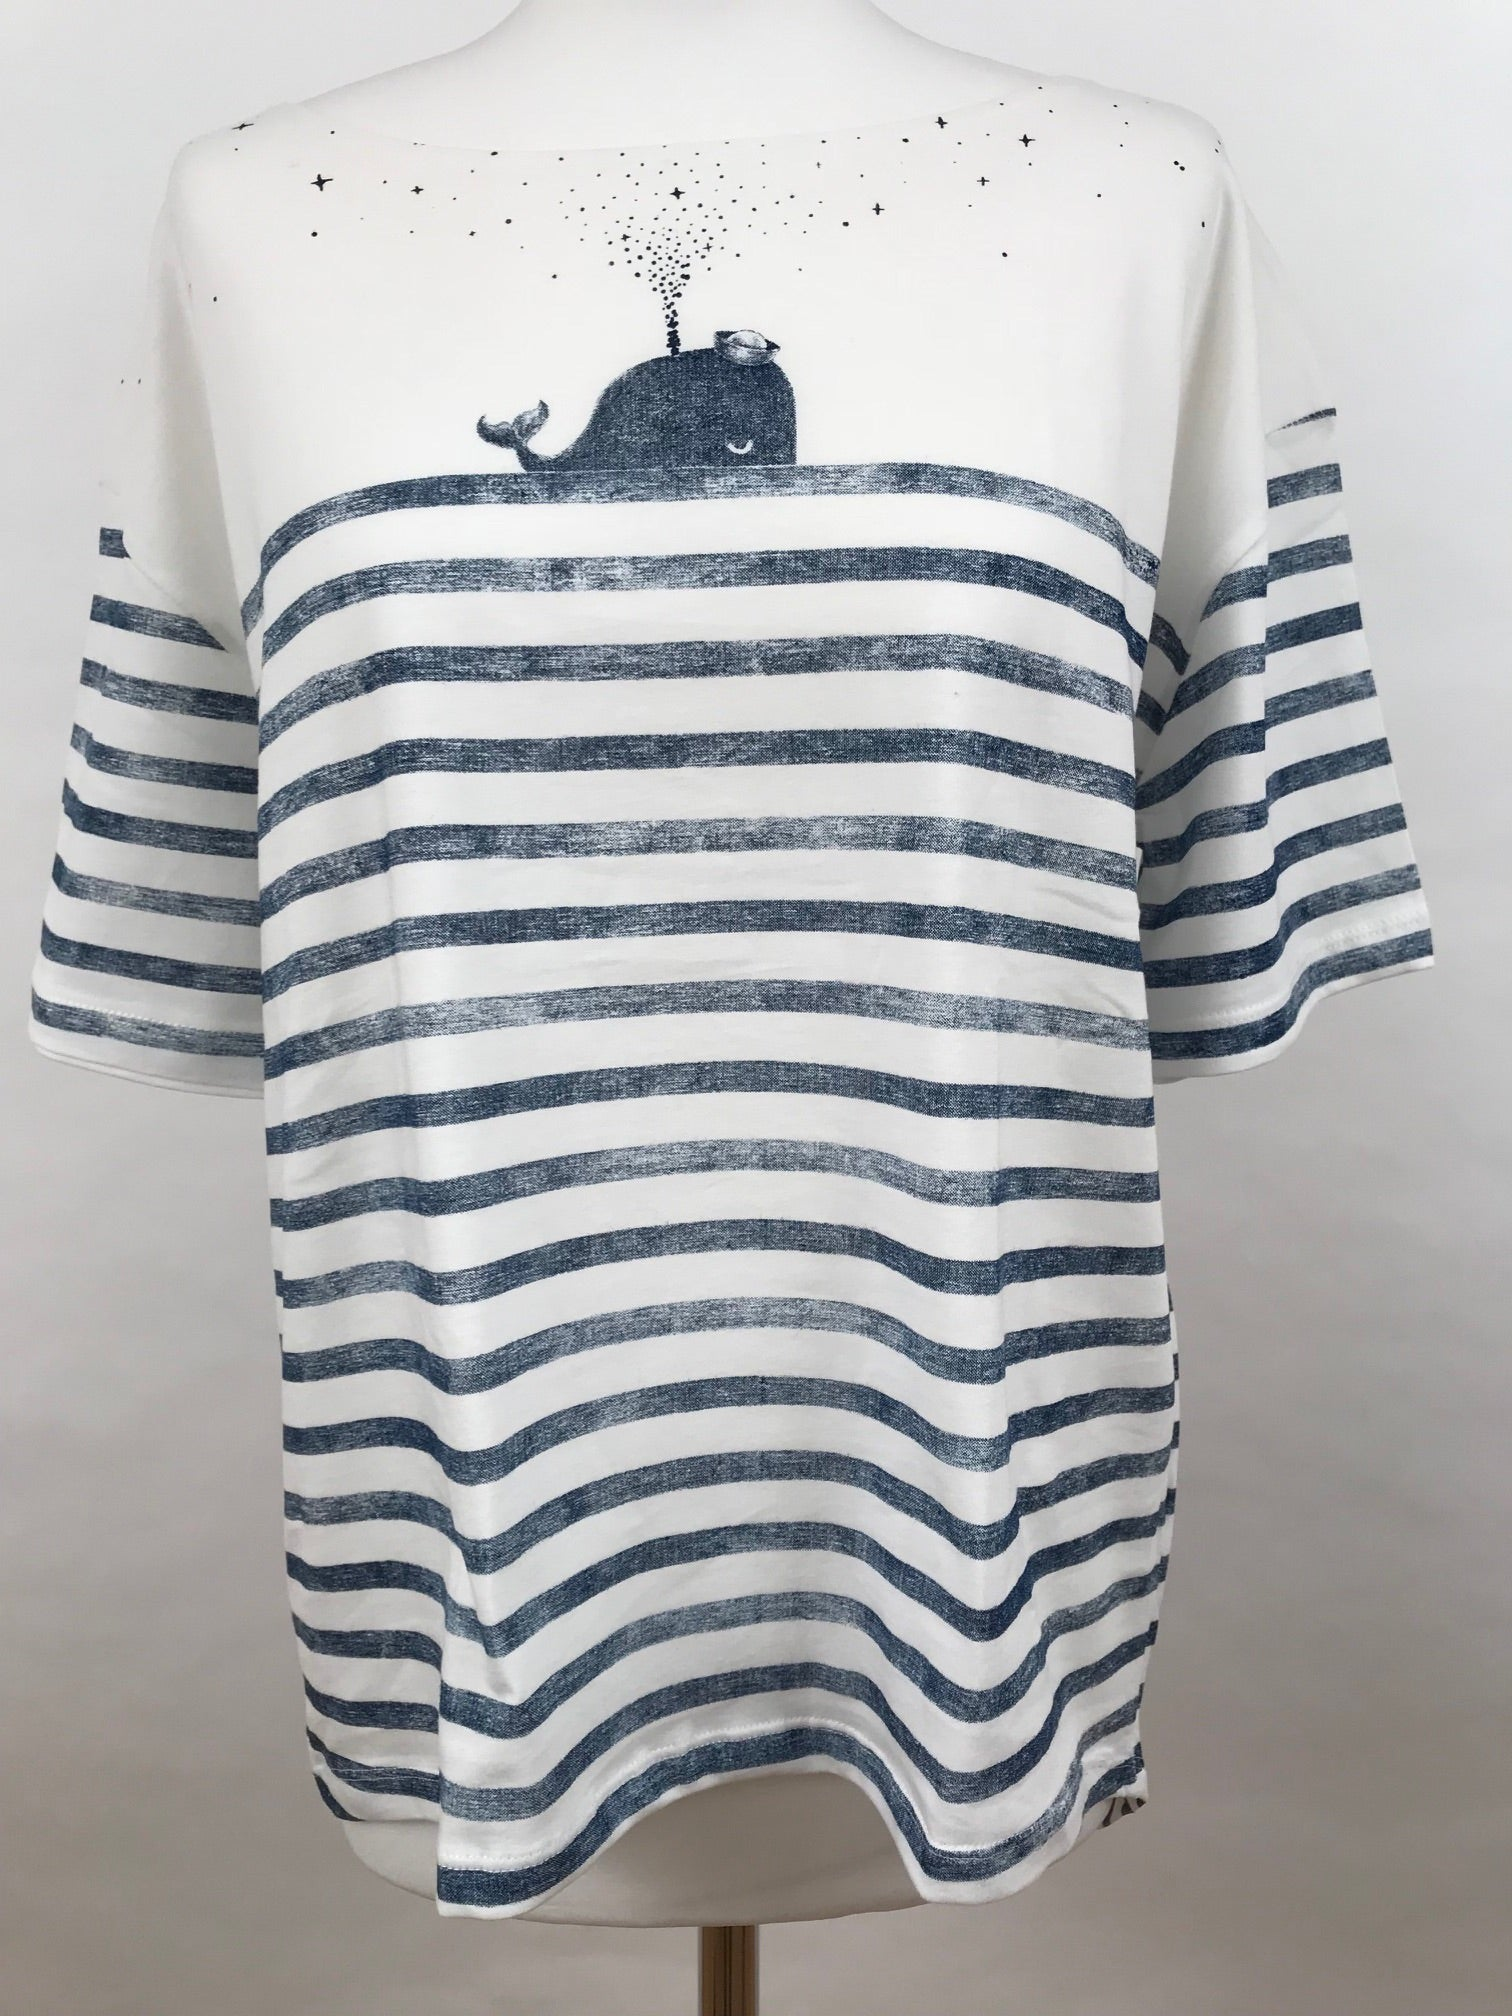 Oii Oversize T-Shirt - Whale